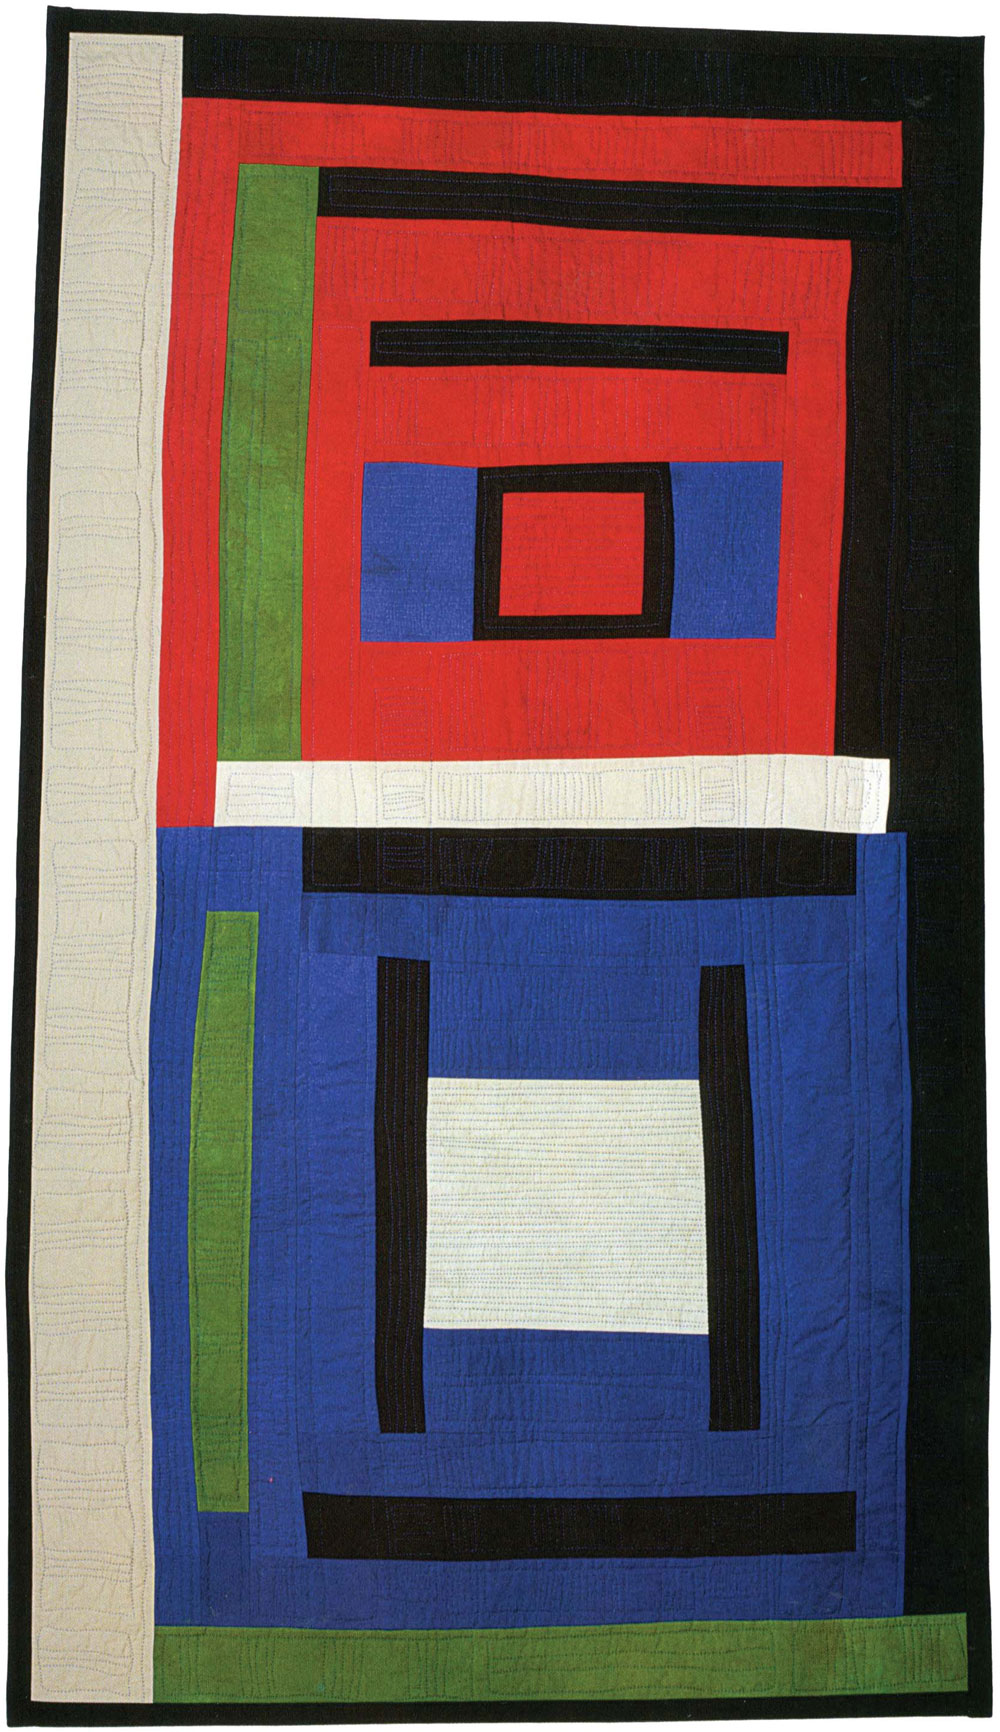 Nancy Crow is a modern quilt pioneer who has inspired generations of artists with her creativity. This quilt is #15 from her Constructions series.